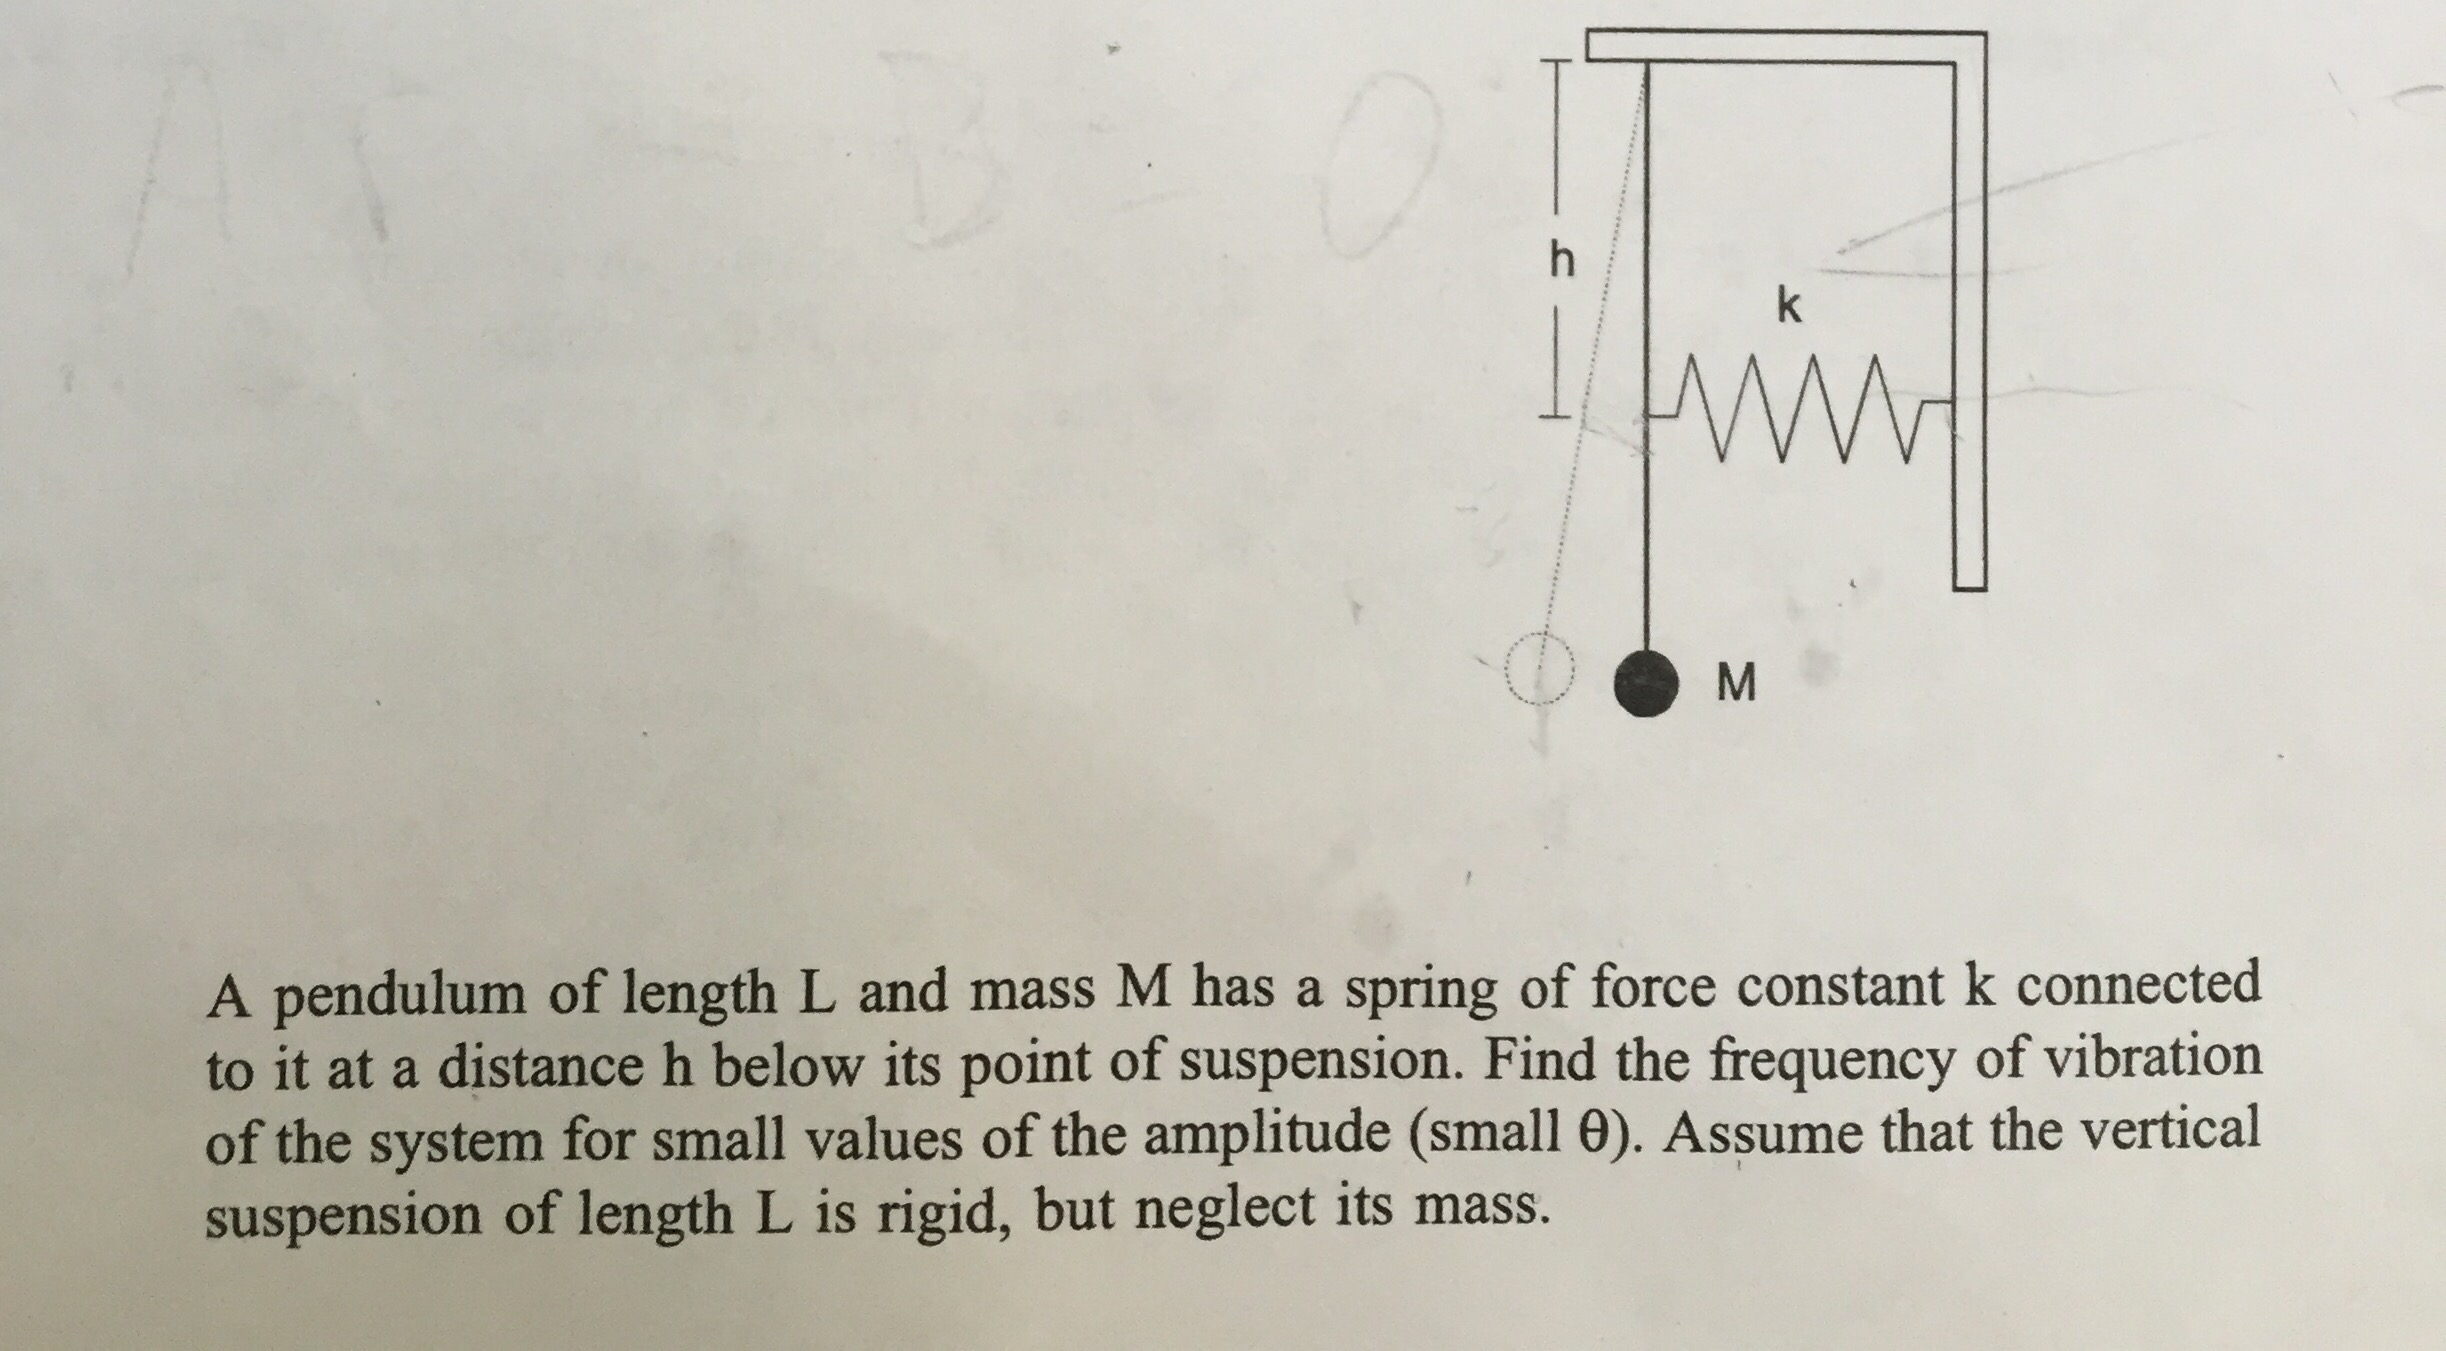 A pendulum of length L and mass M has a spring of